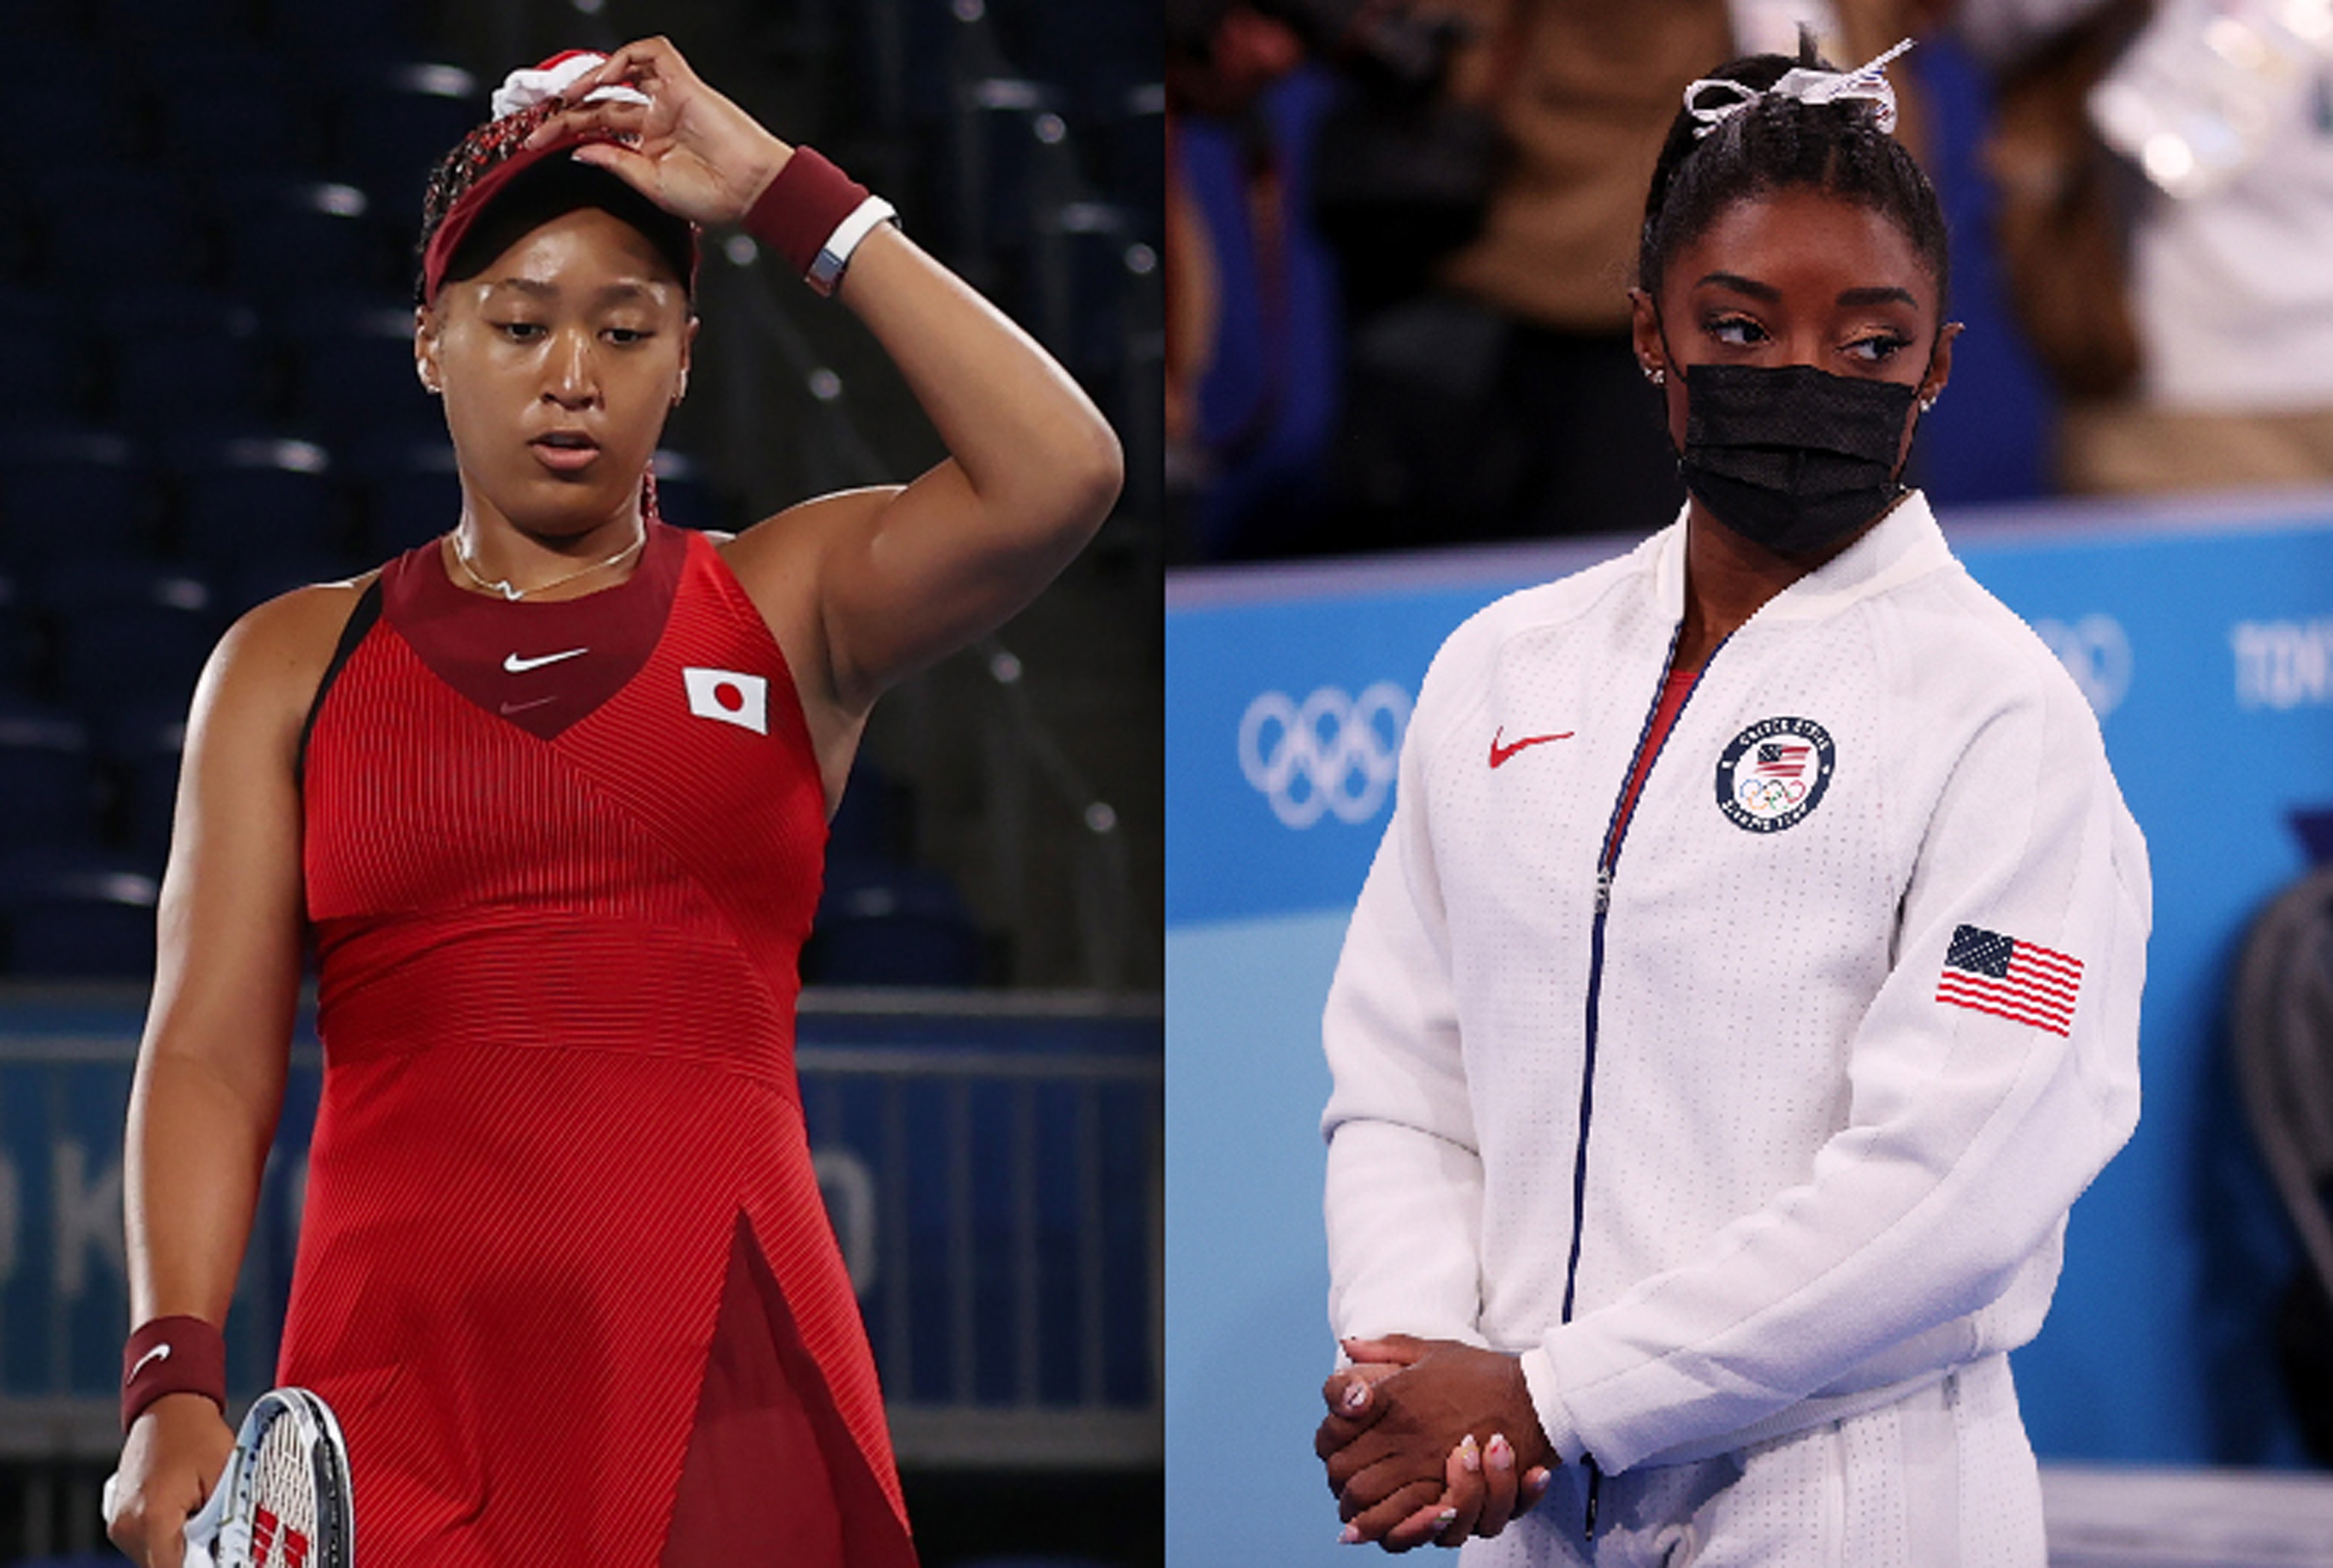 Top athletes Naomi Osaka (left) and Simone Biles have each talked publicly about their mental health. | Getty Images